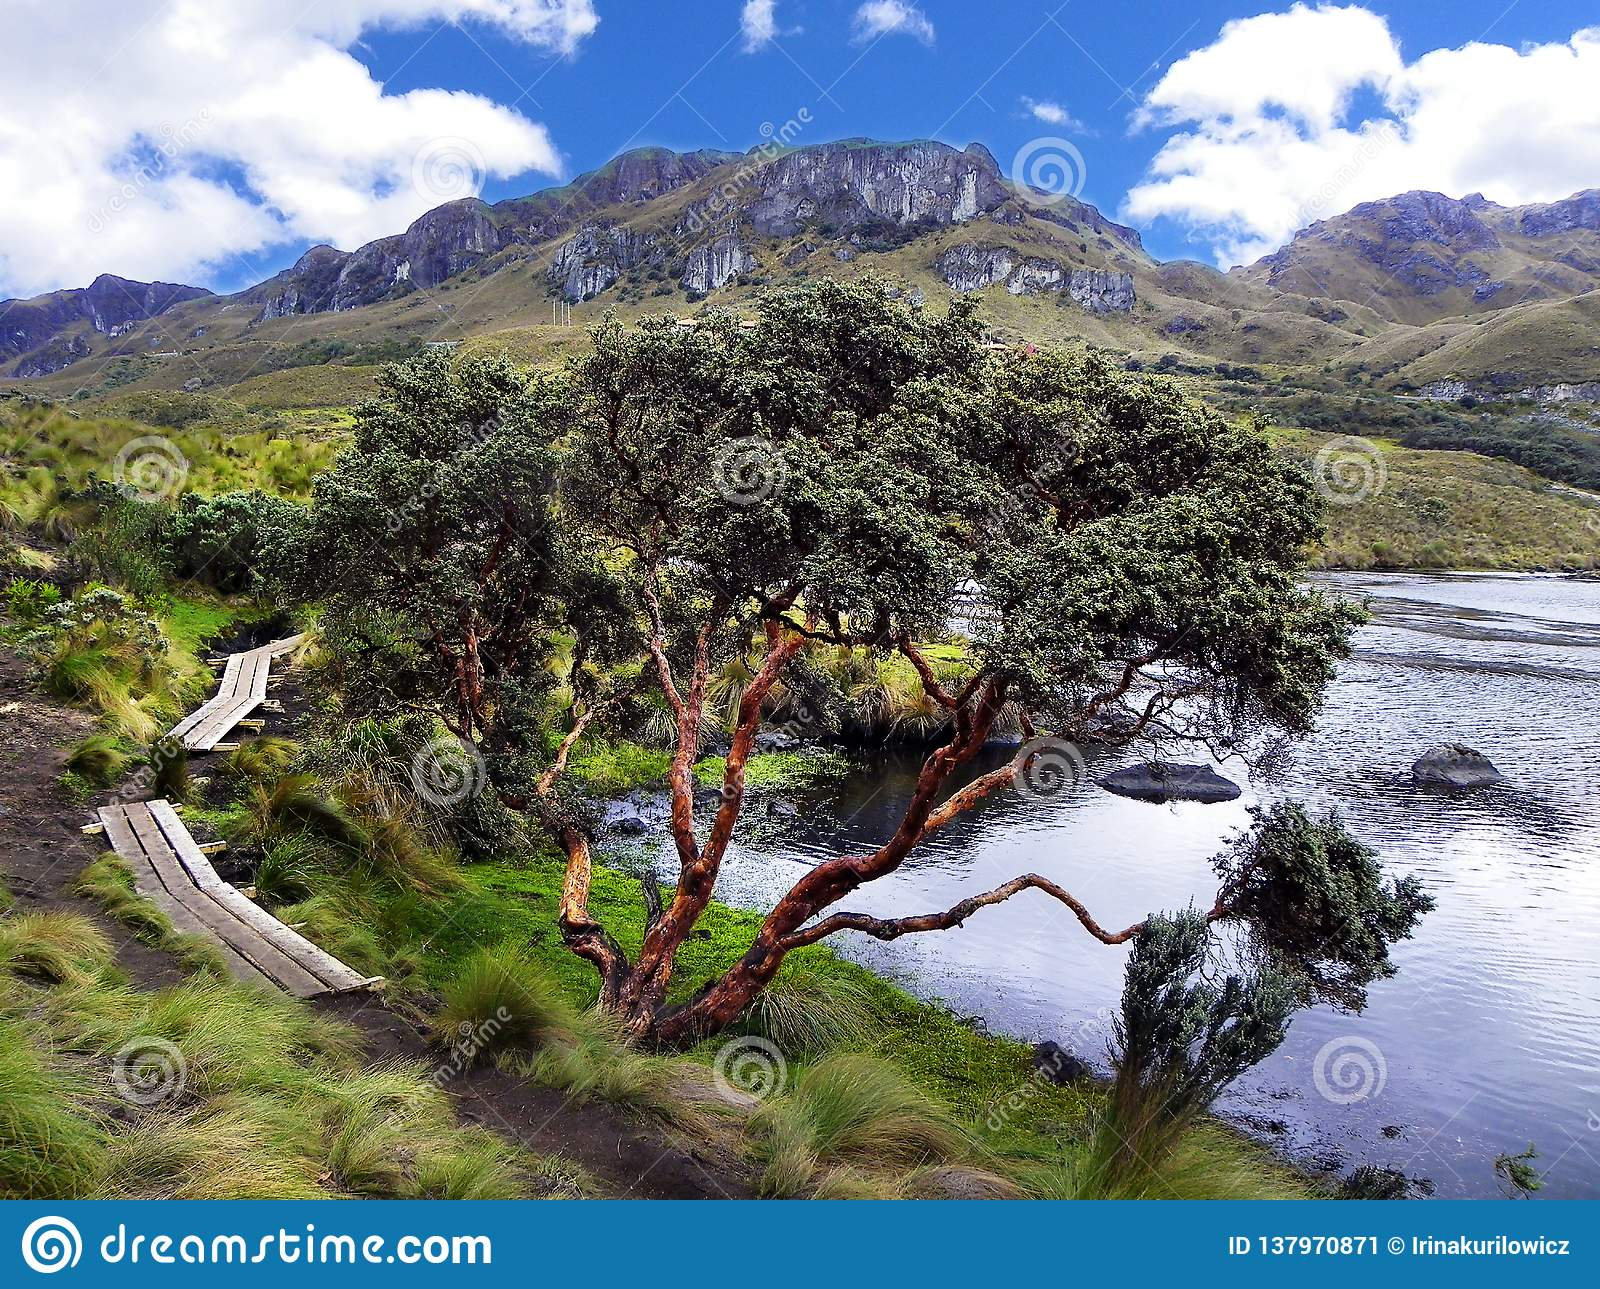 Toreadora lake lagoon and Paper tree or Polylepis at National Park El Cajas, Andean Highlands, Ecuador